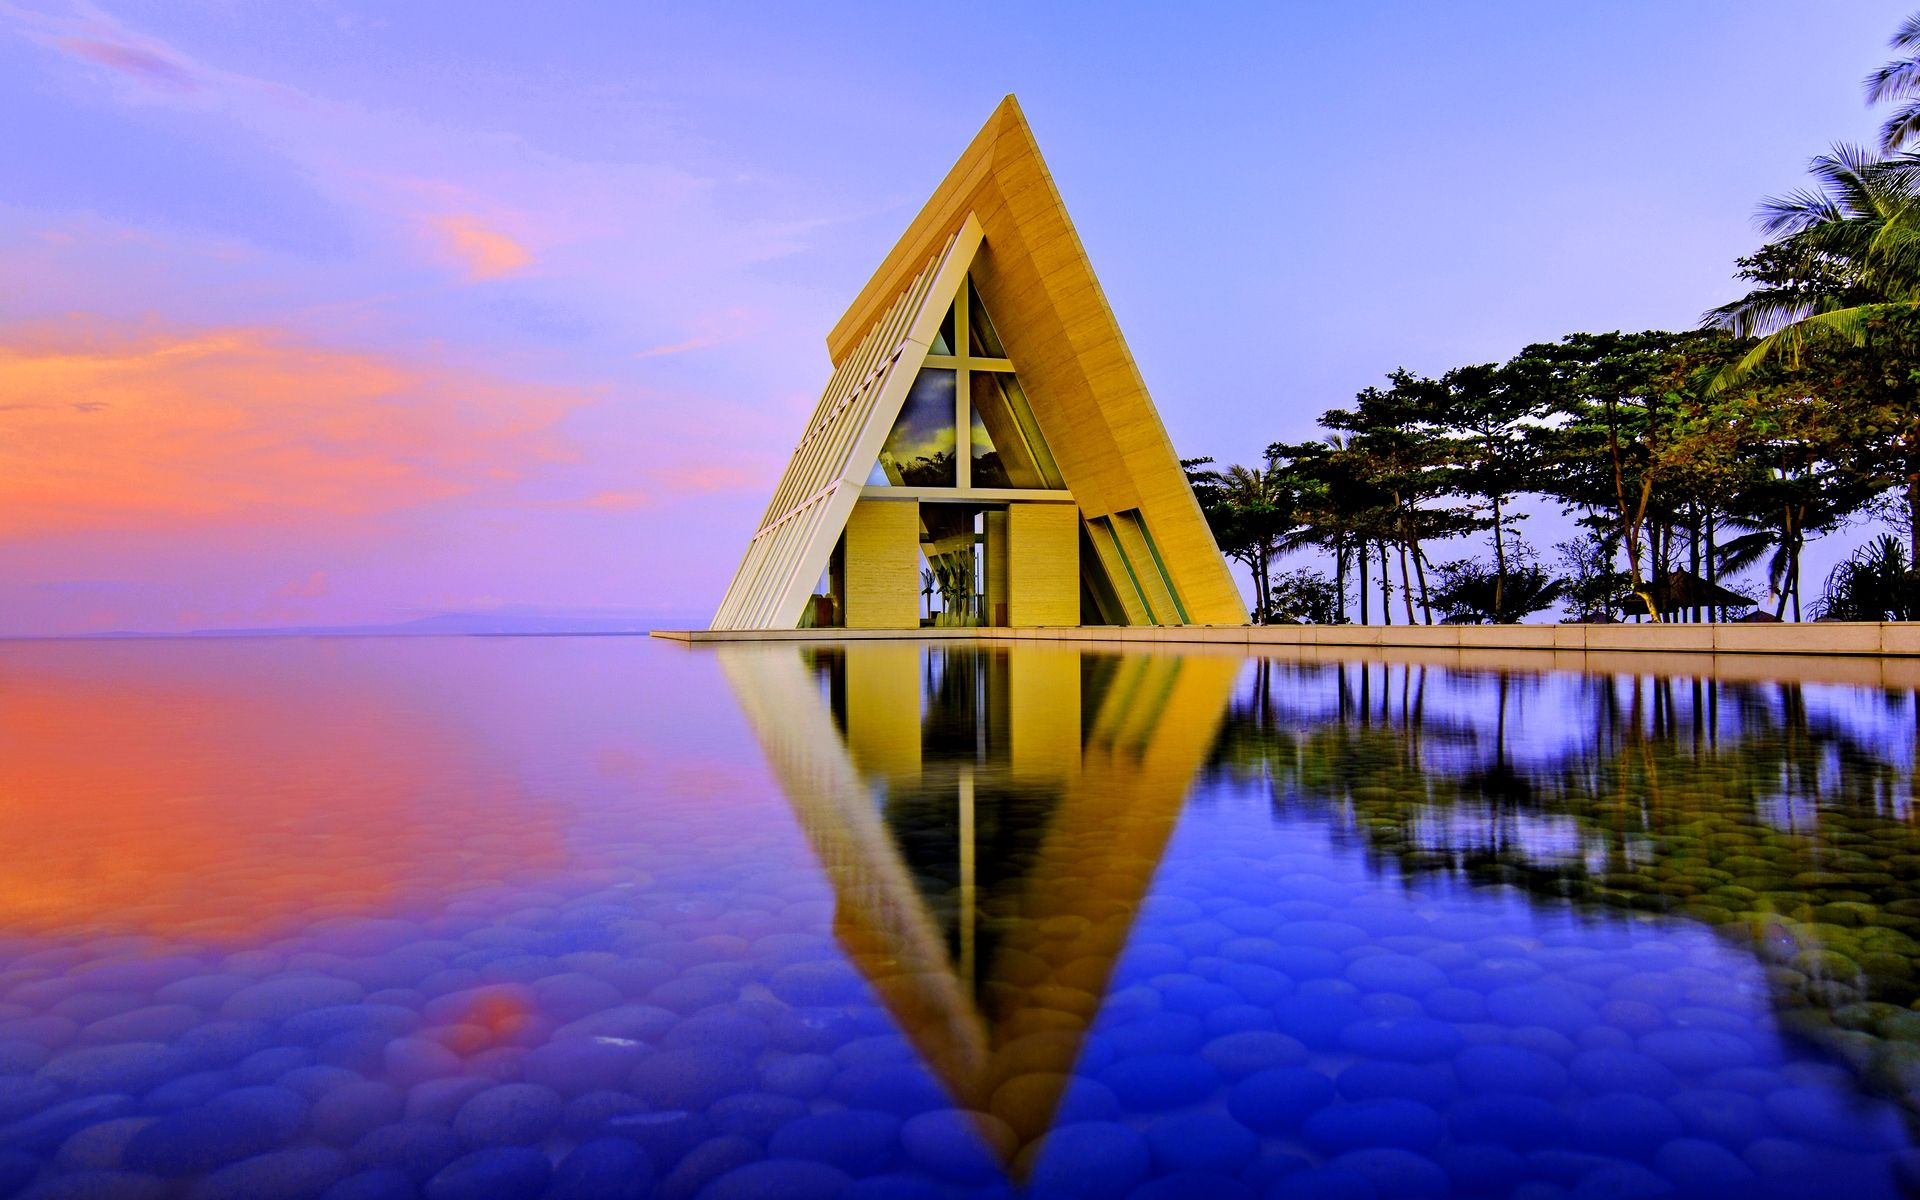 modern architecture house wallpaper. Roof Http://ninjacam.com/fantastic-modern-architecture-wallpapers Modern Architecture House Wallpaper T